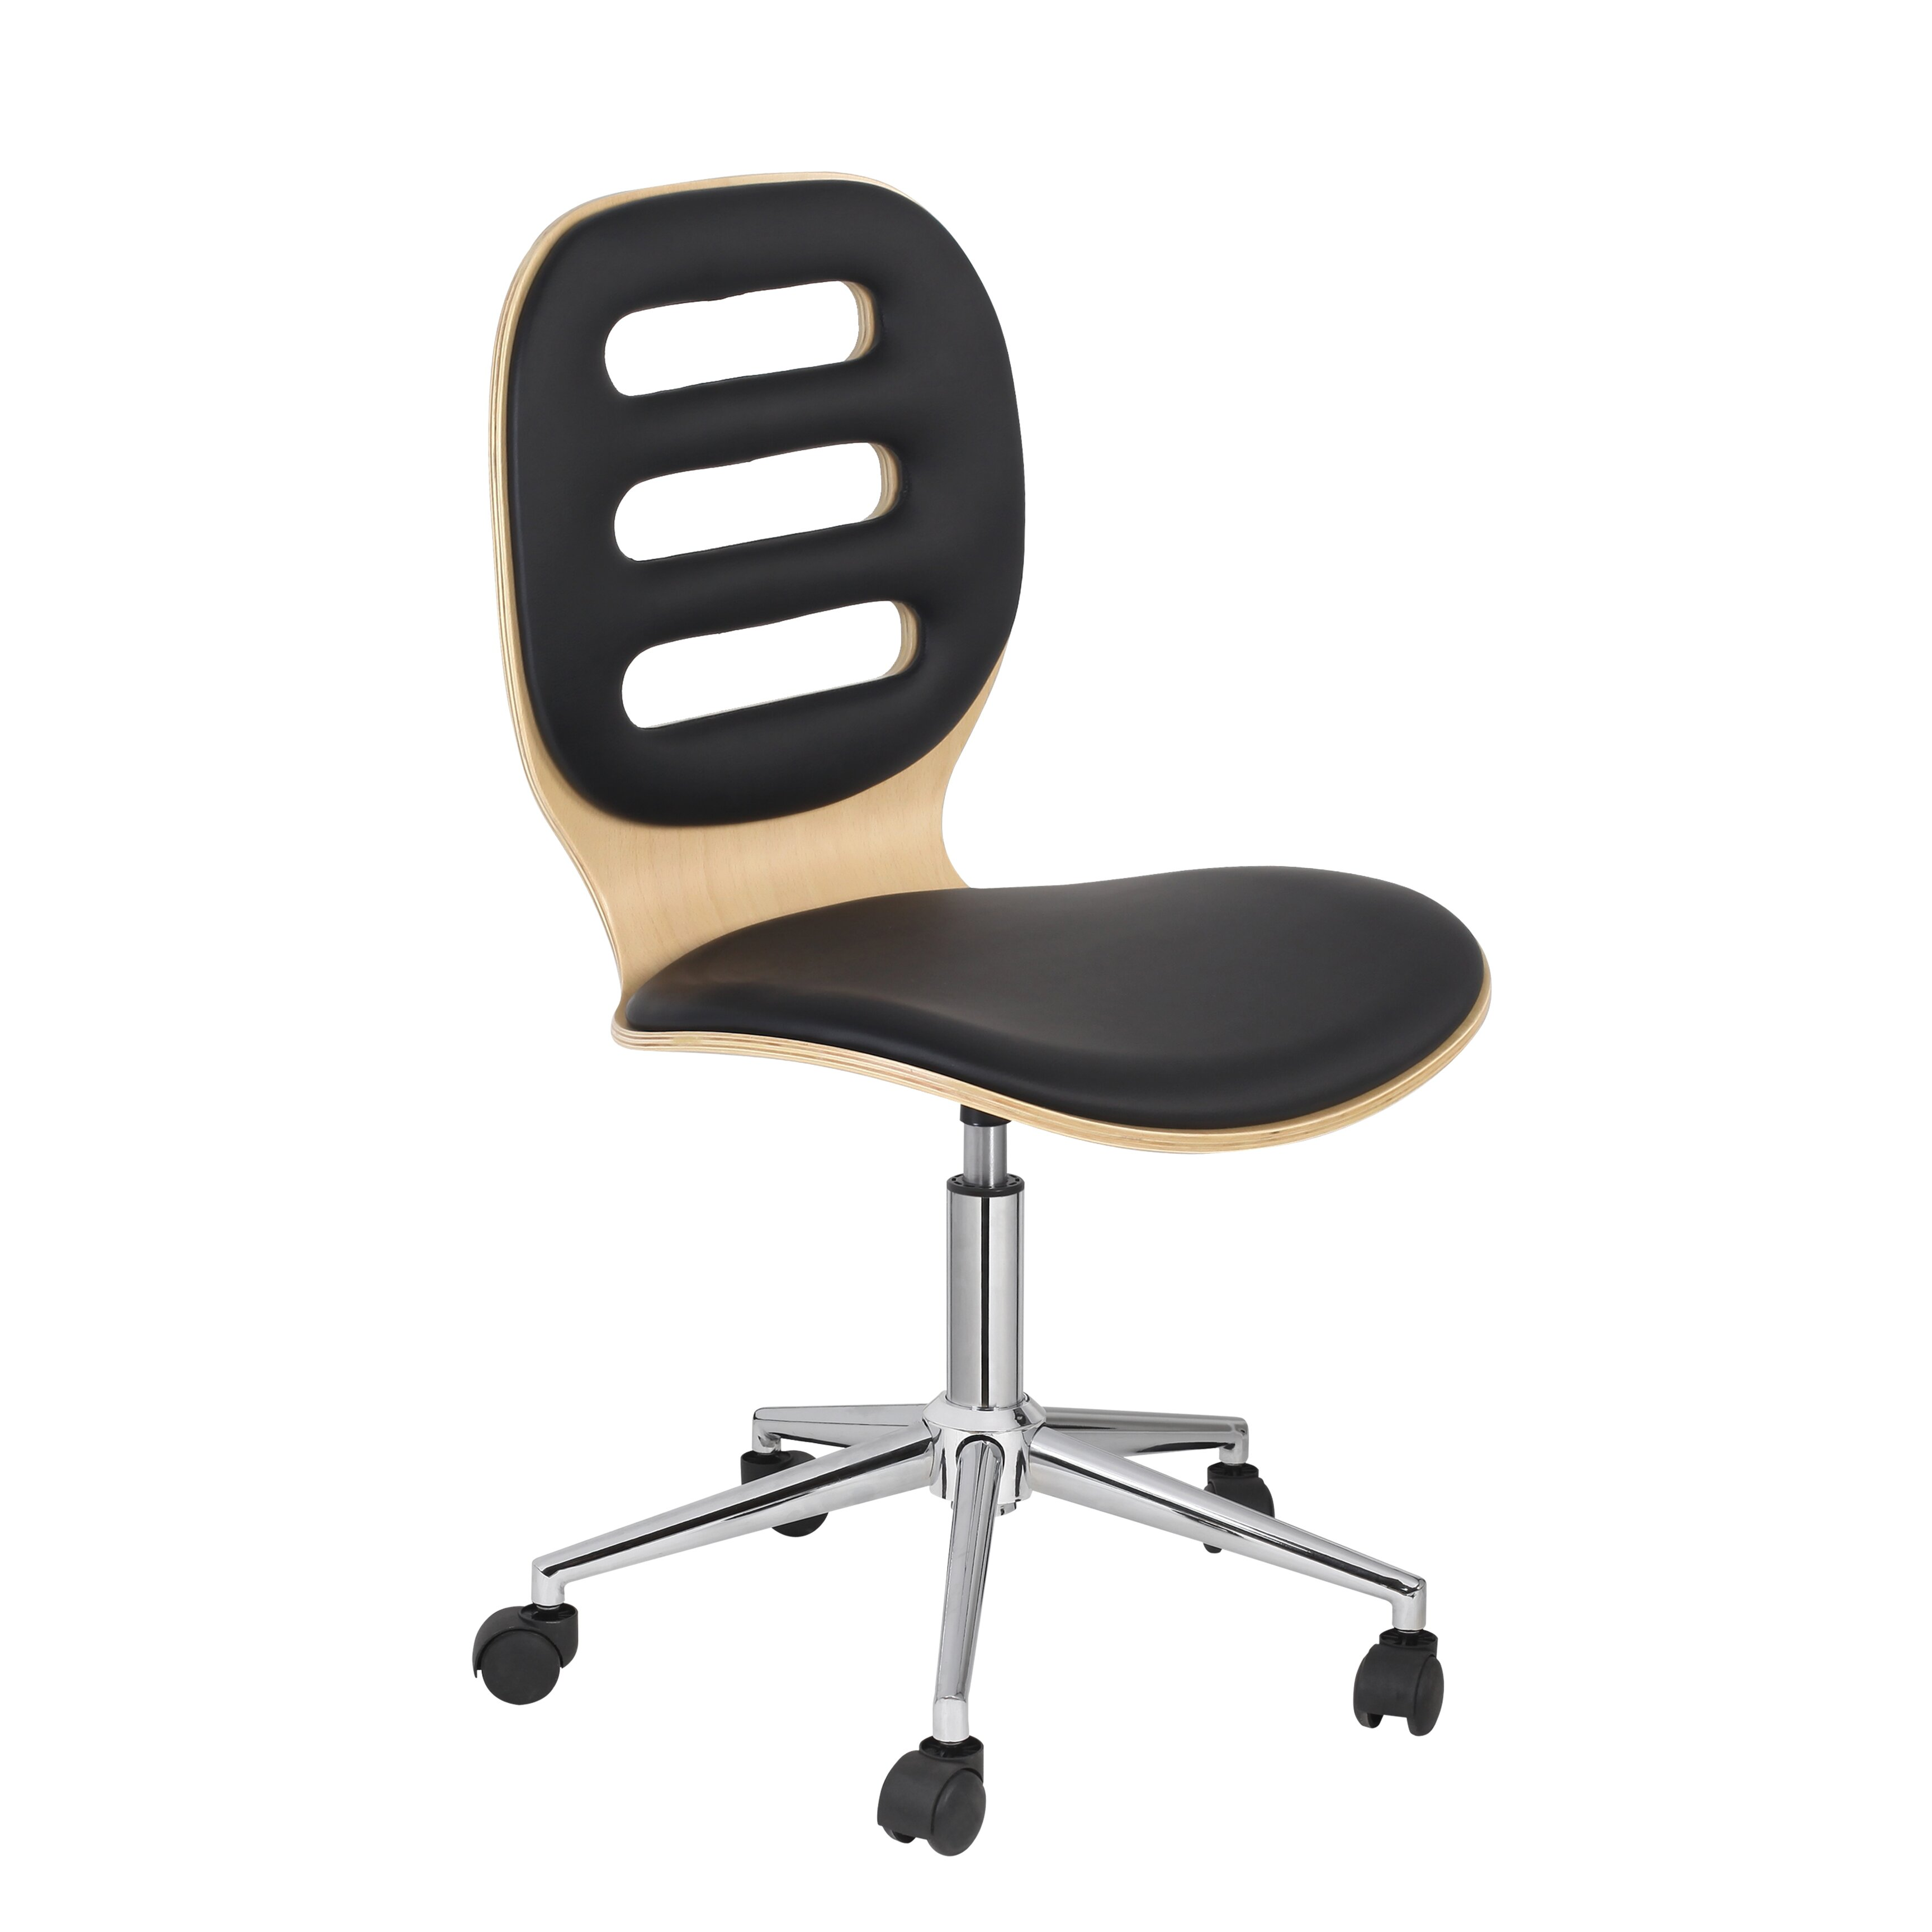 Furniture Office Furniture All Office Chairs Porthos Home SKU